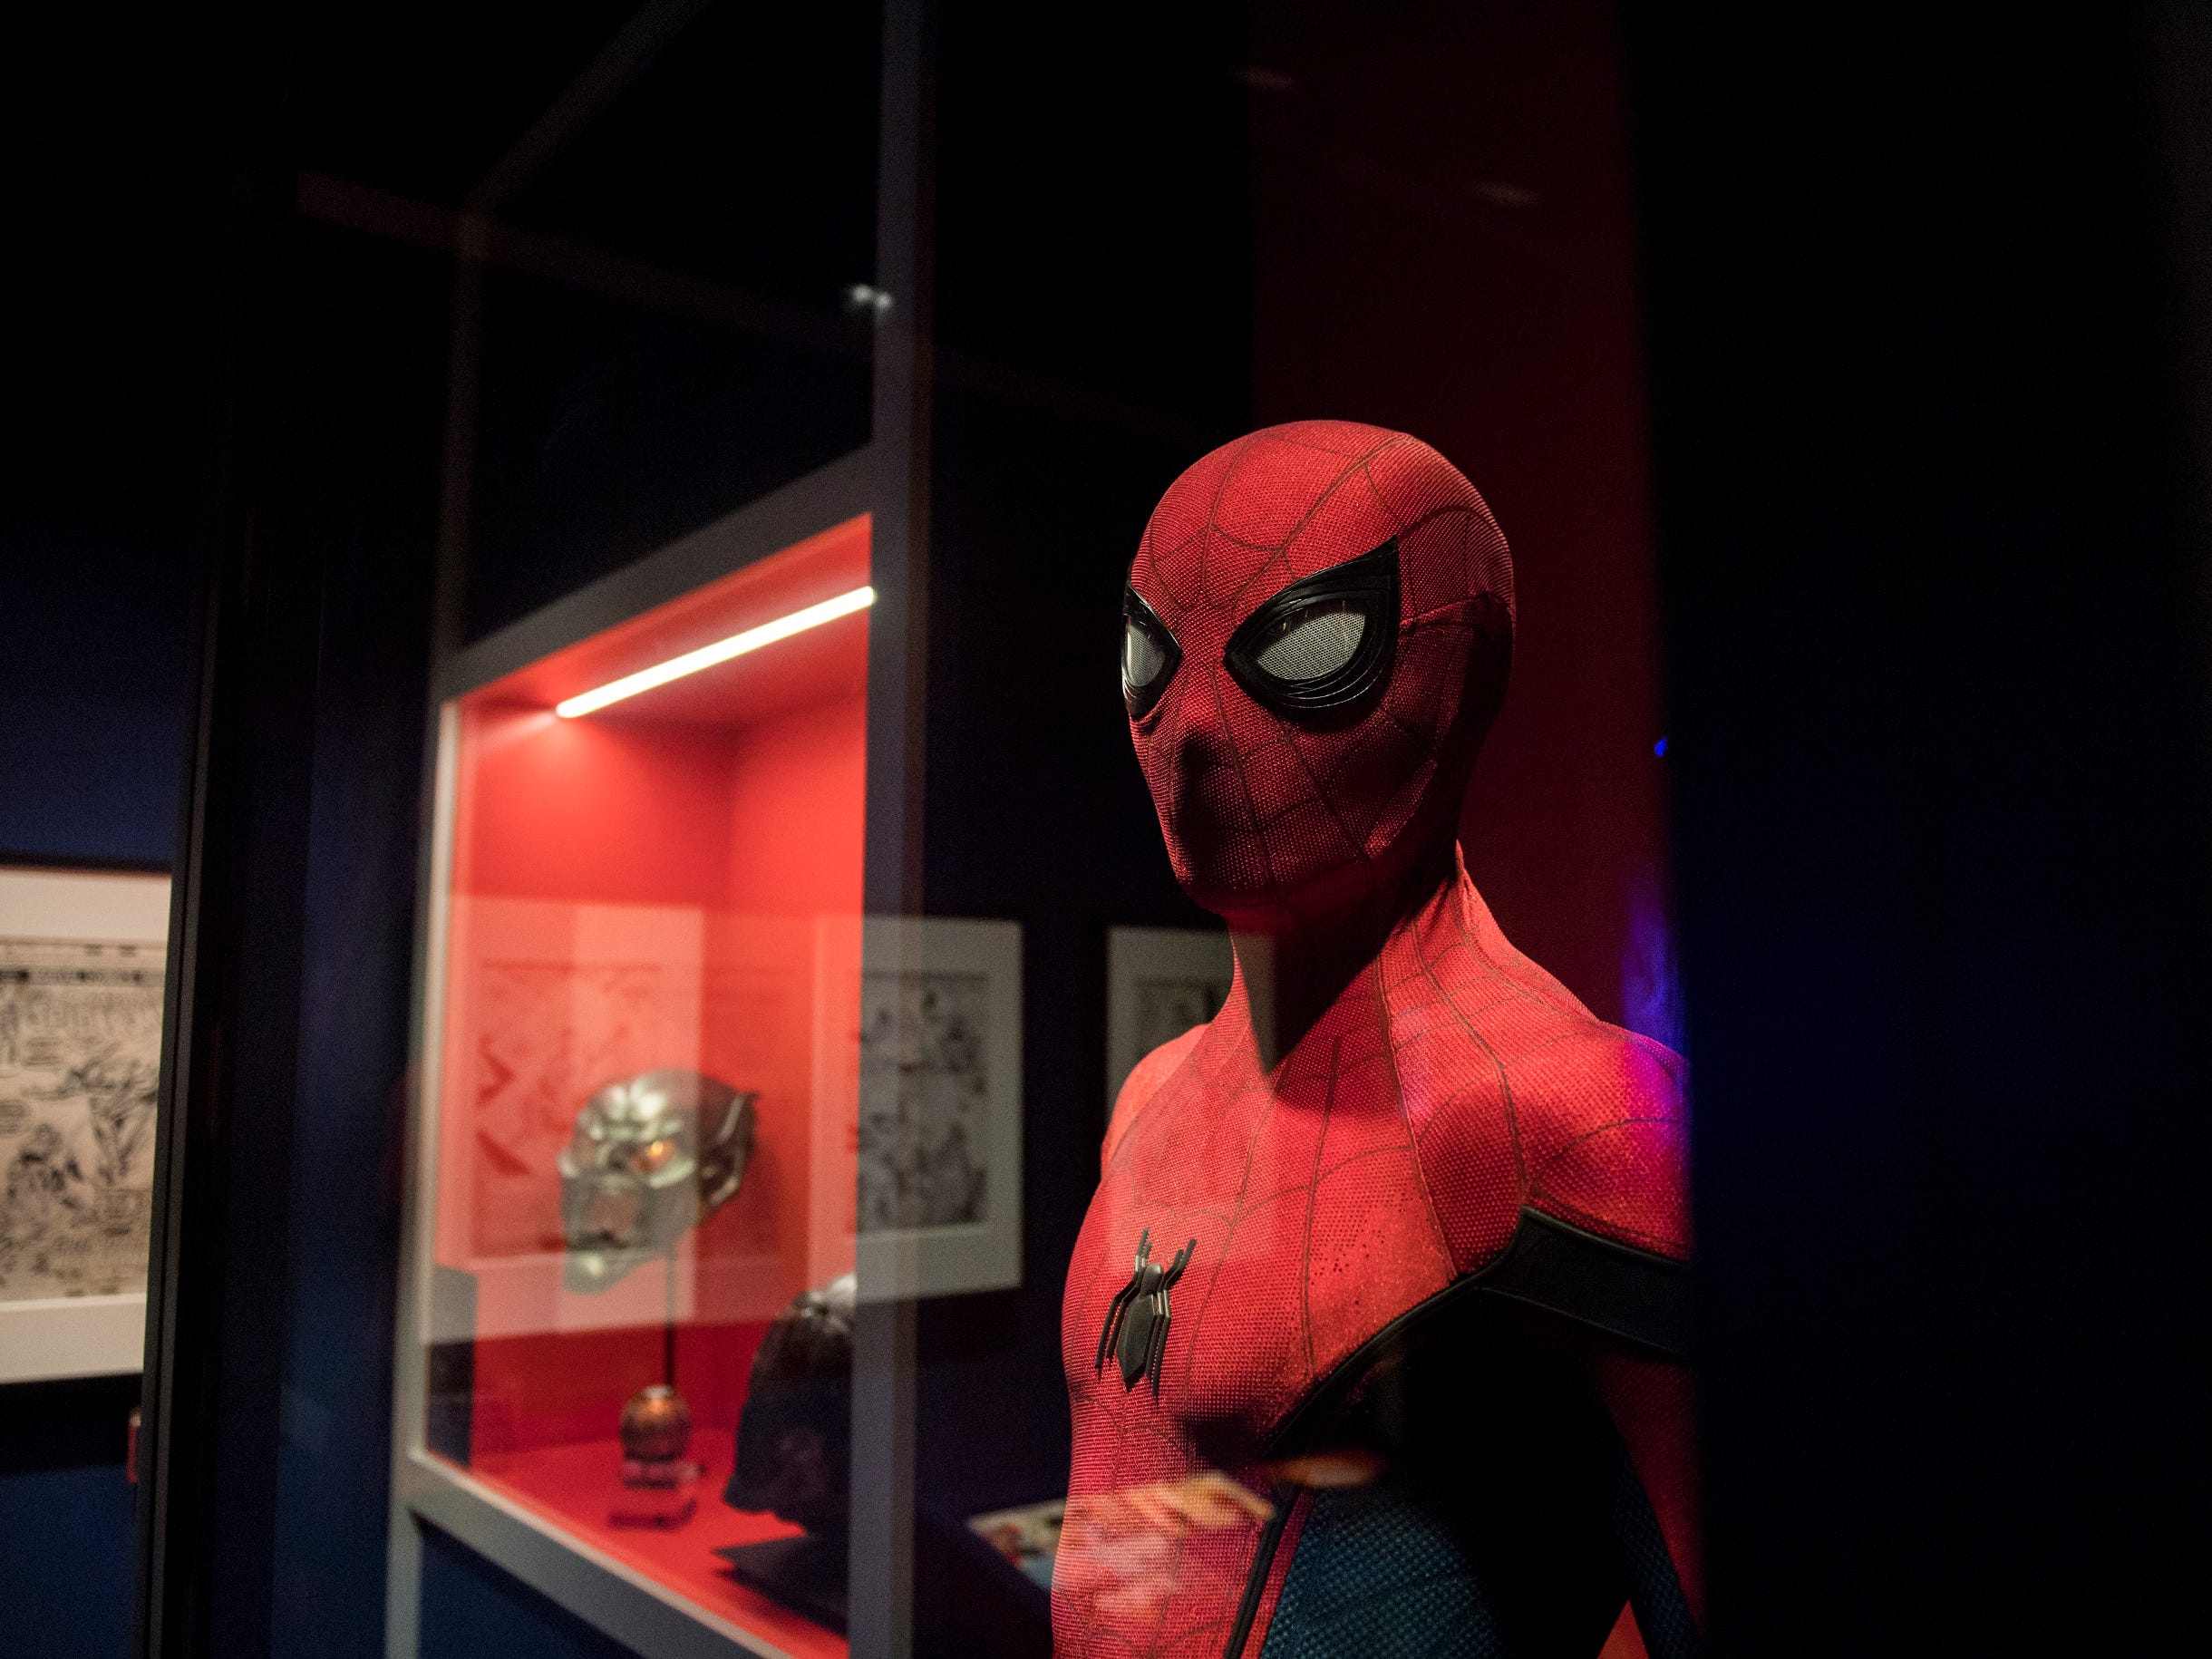 Up close with a Spider-Man costume at the new 'Marvel: Universe of Super Heroes' installation at the Franklin Institute Friday, April 12, 2019 in Philadelphia, Pa. The exhibit runs from April 13-September 2.